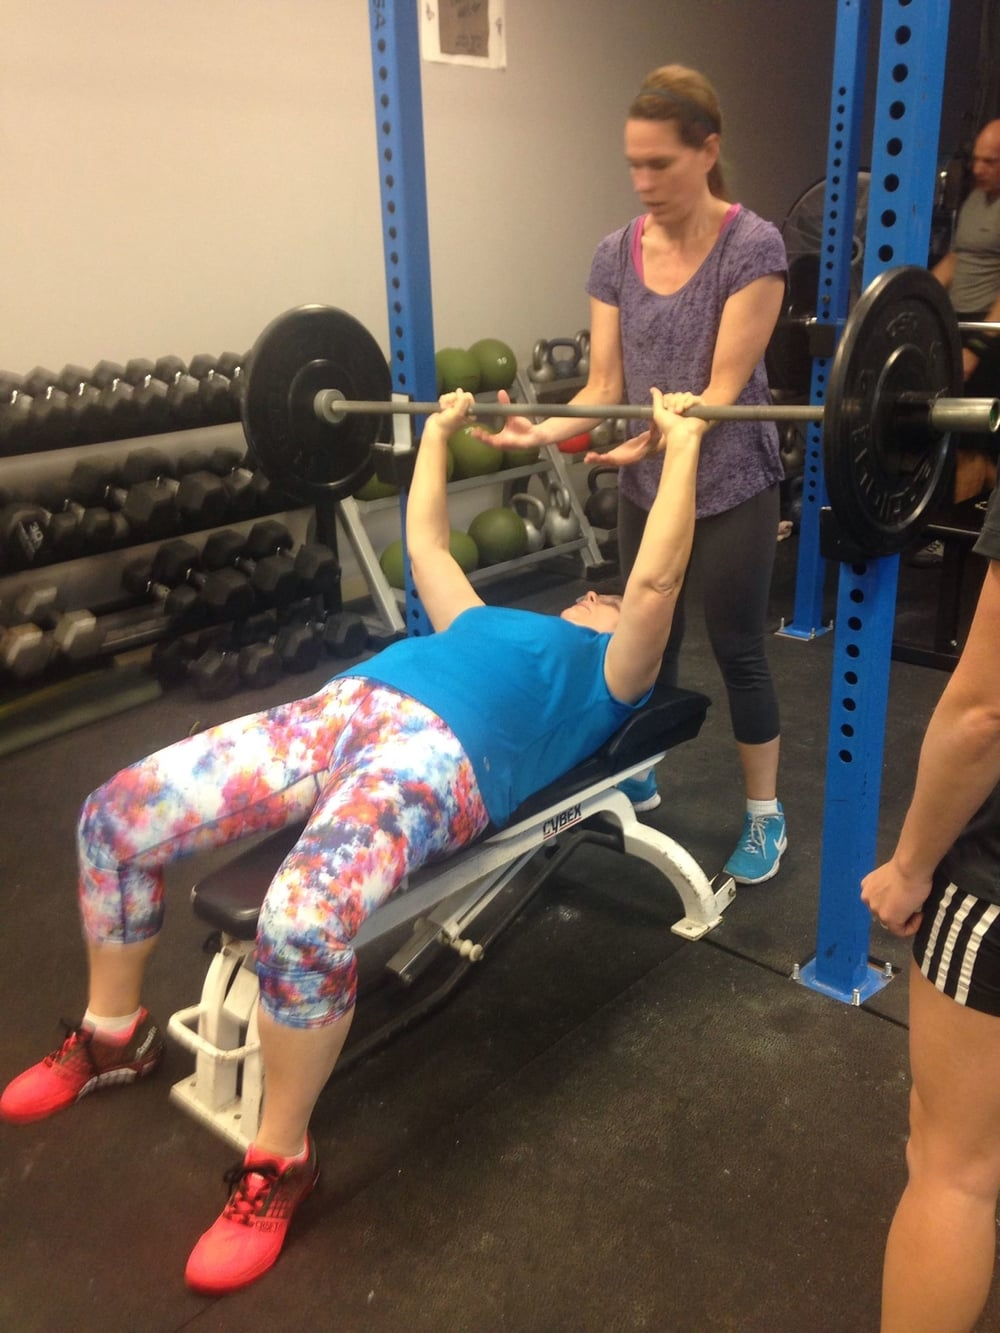 Patty looking strong bench pressing for the first time in her life!